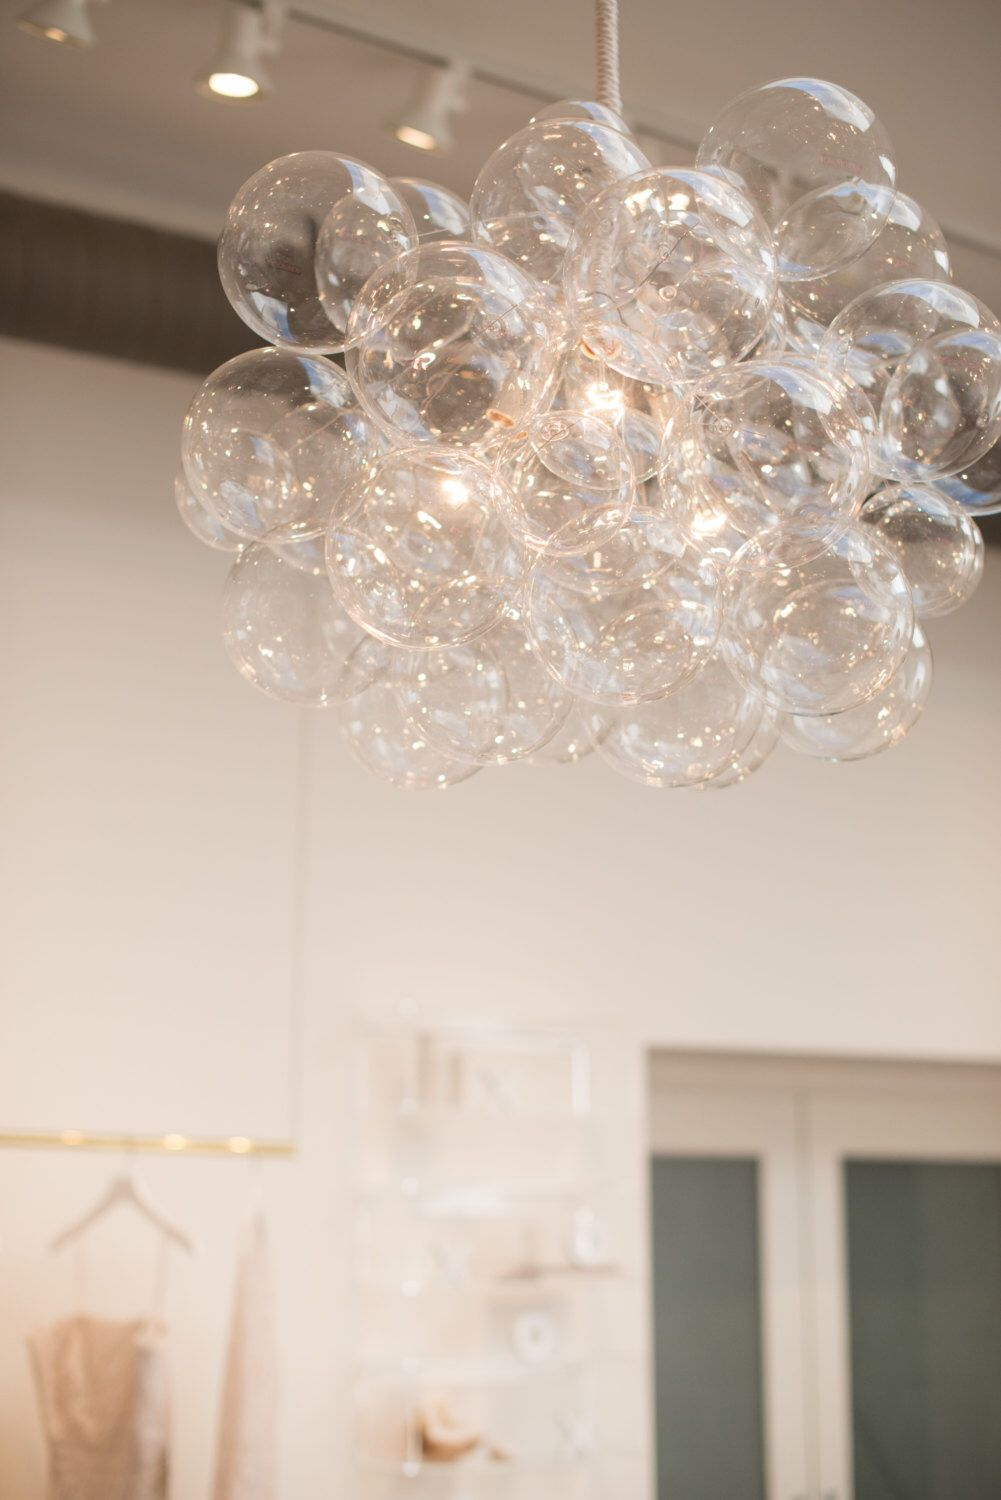 The 45 Bubble Chandelier • Bubble Light • Dining Room Chandelier • LED Lighting • Ceiling Light • Custom Chandelier #bubblekronleuchter